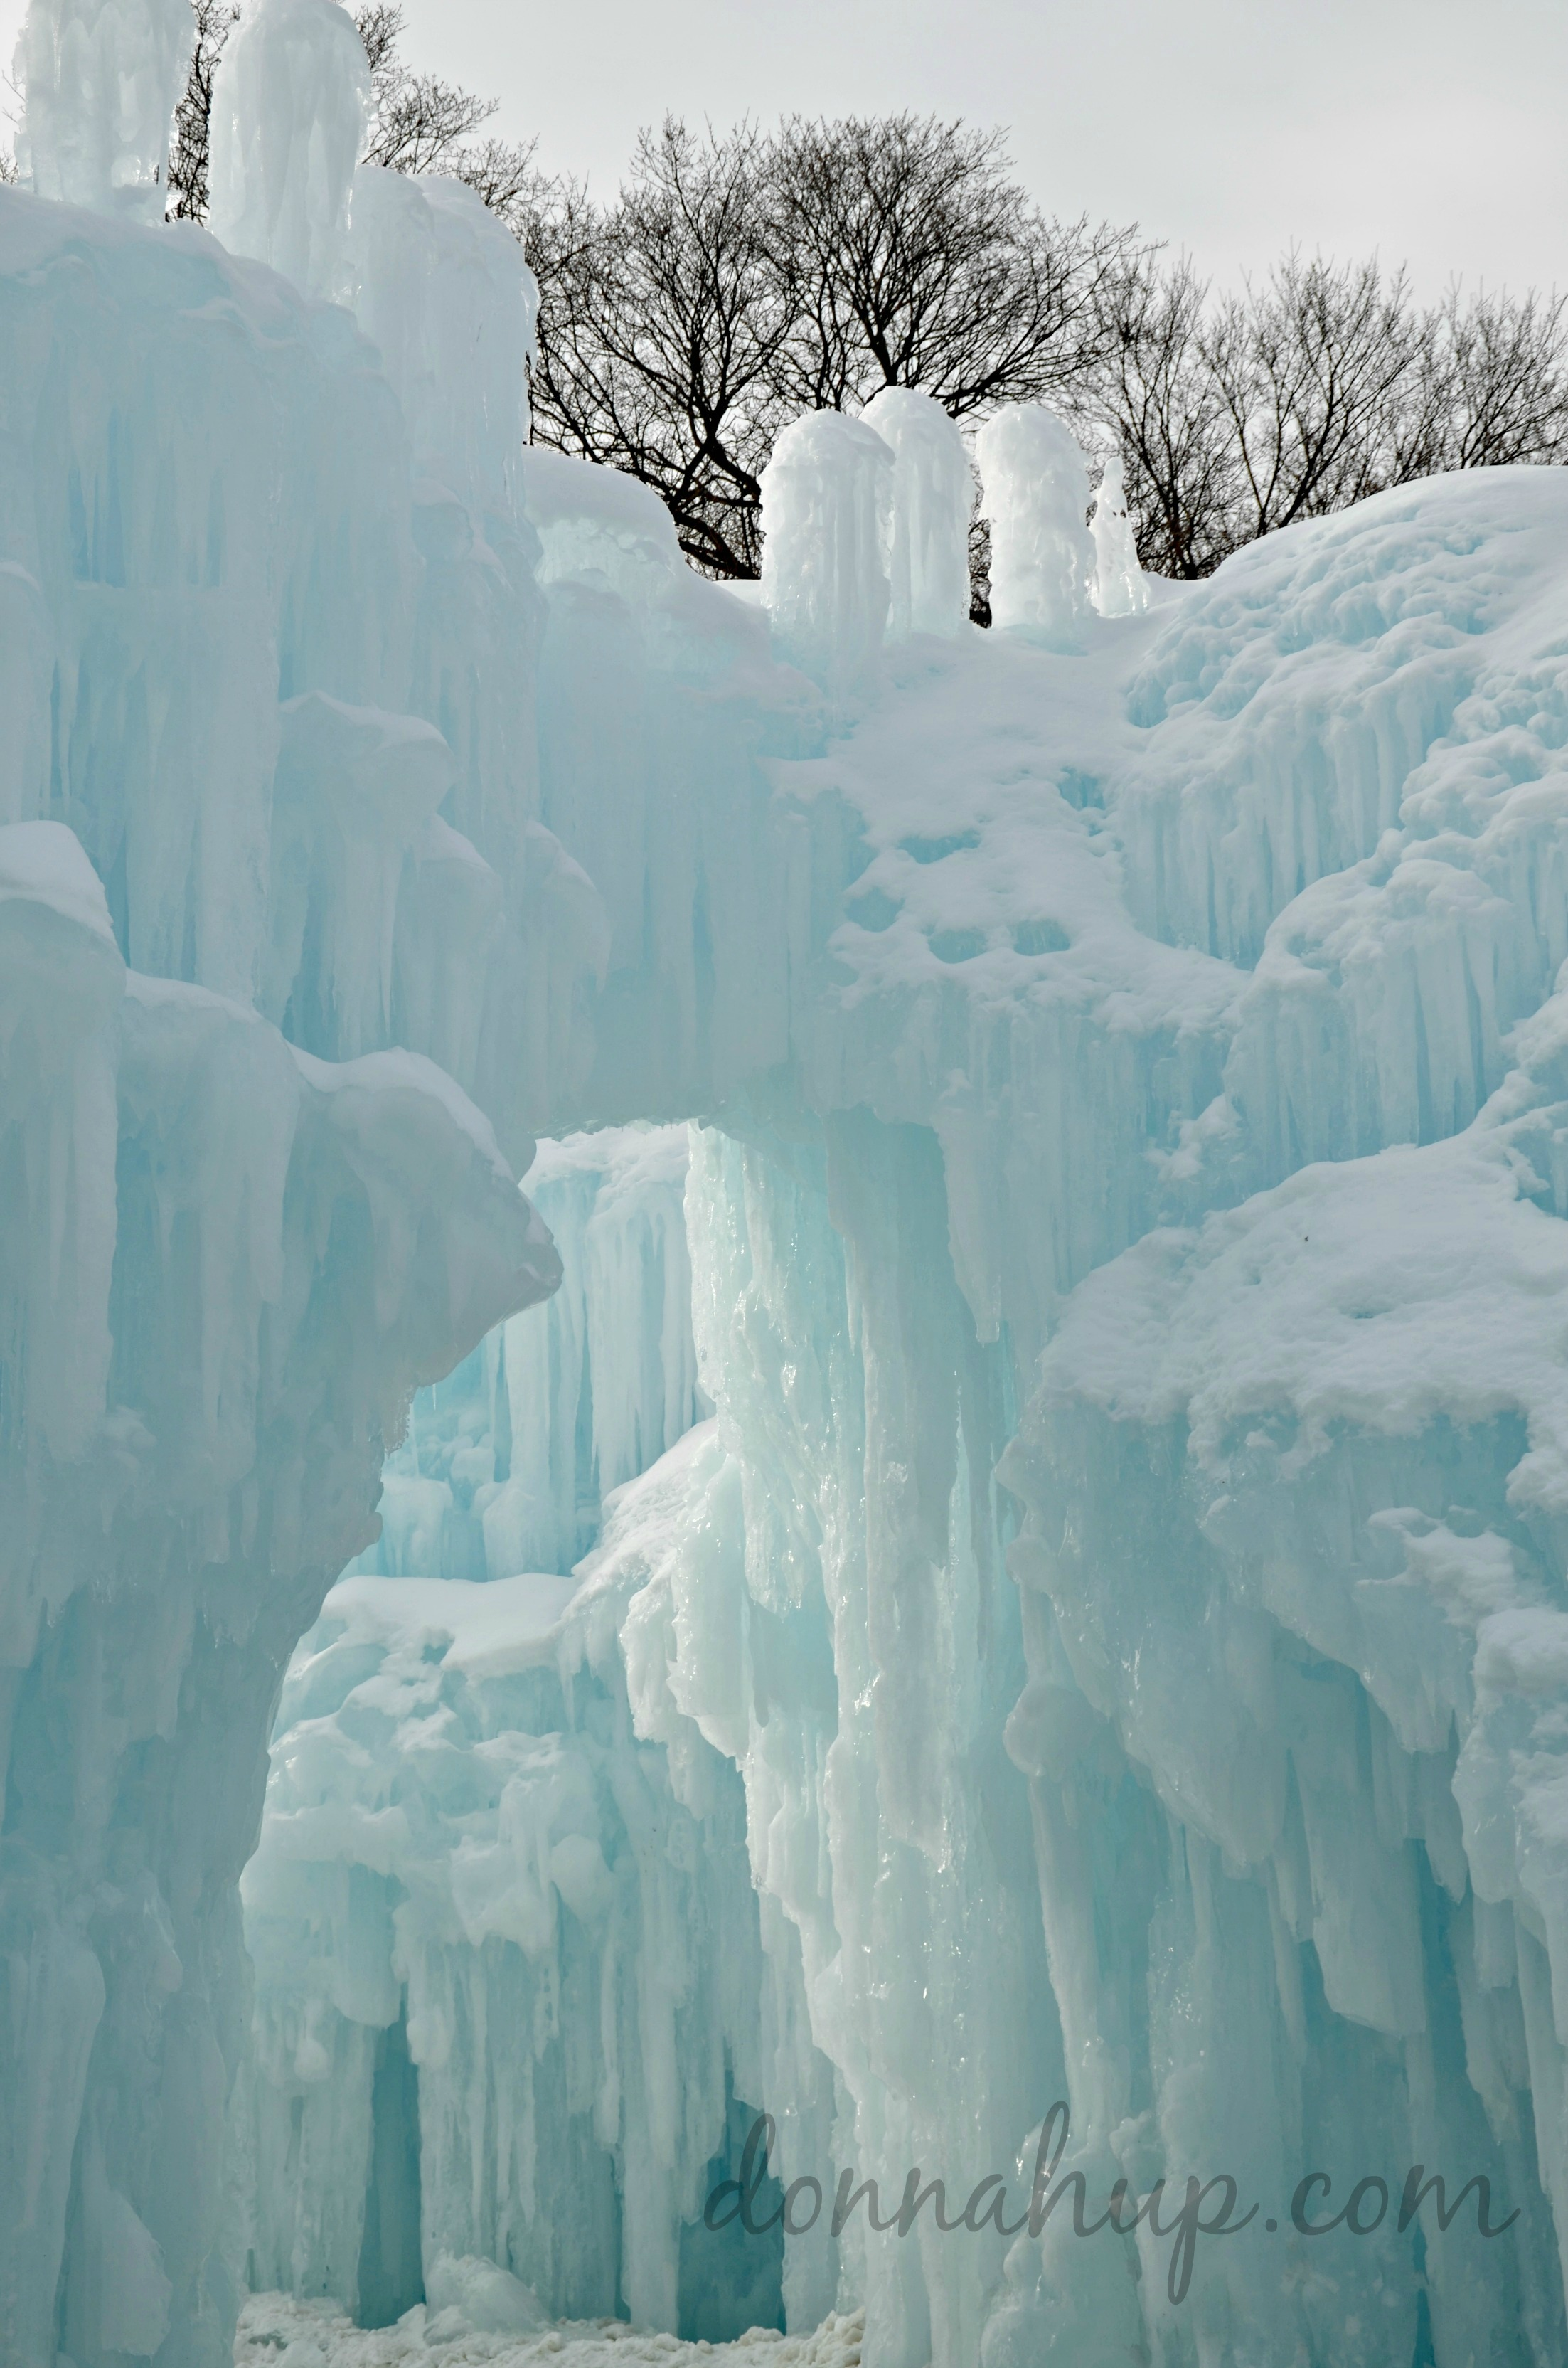 Spending the day at the Ice Castles